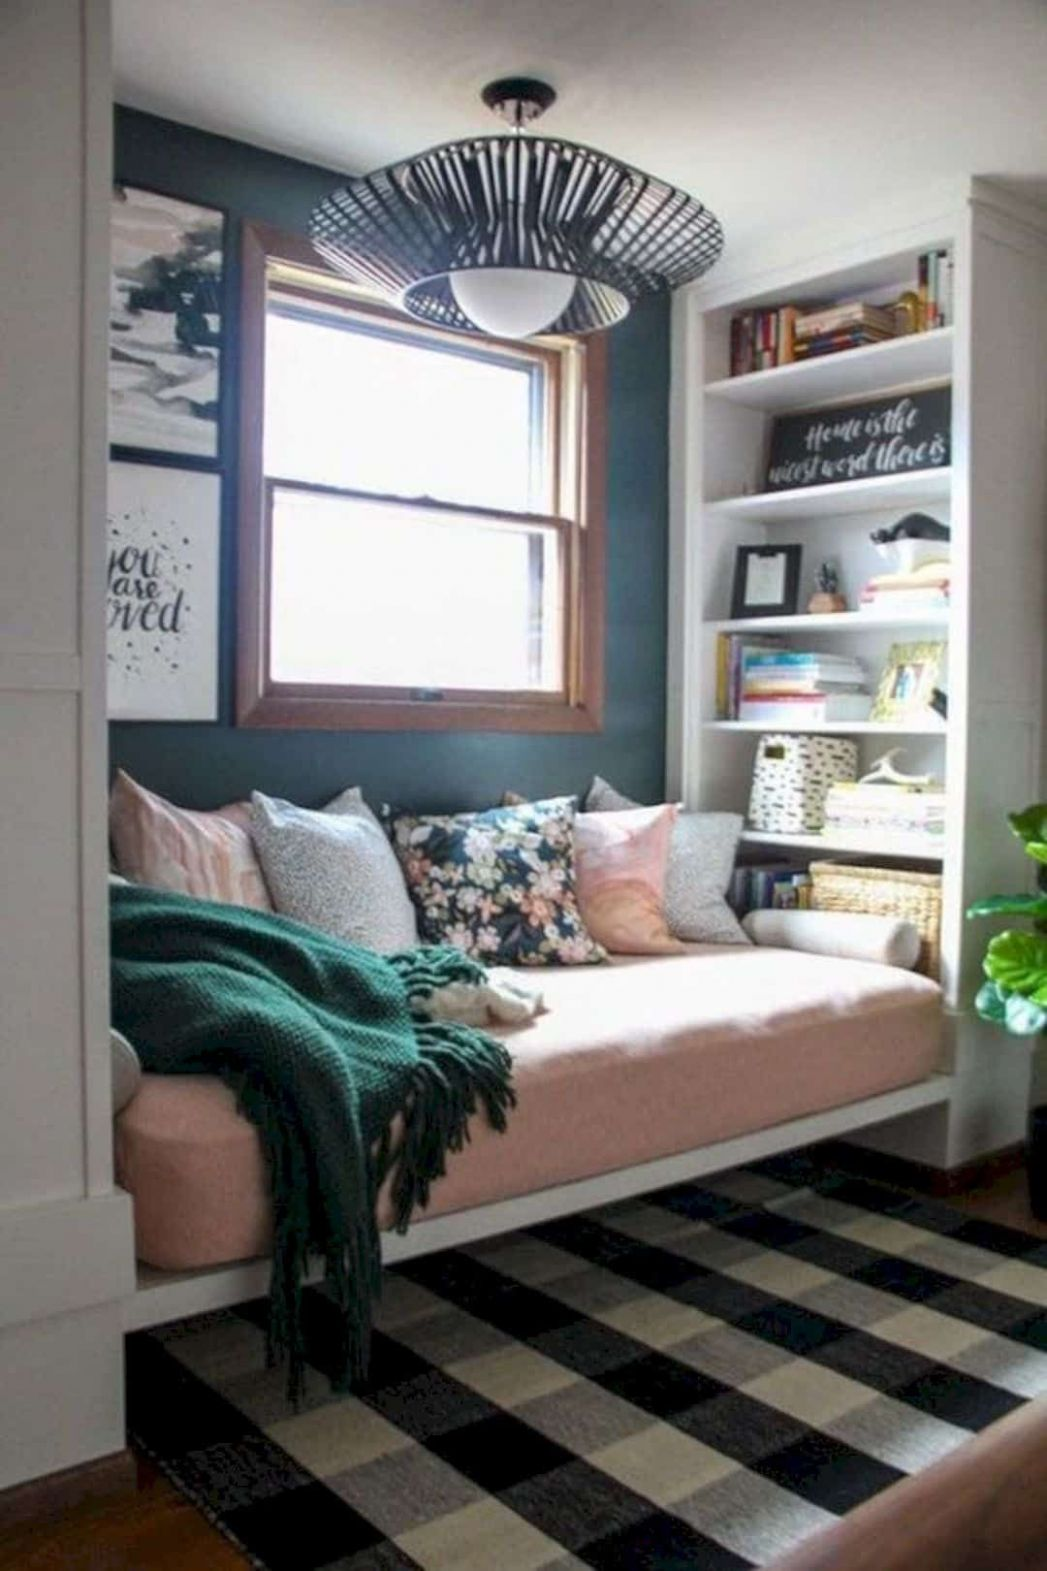 9 DIY Home Decor for Small Spaces   Small apartment living, Small ...